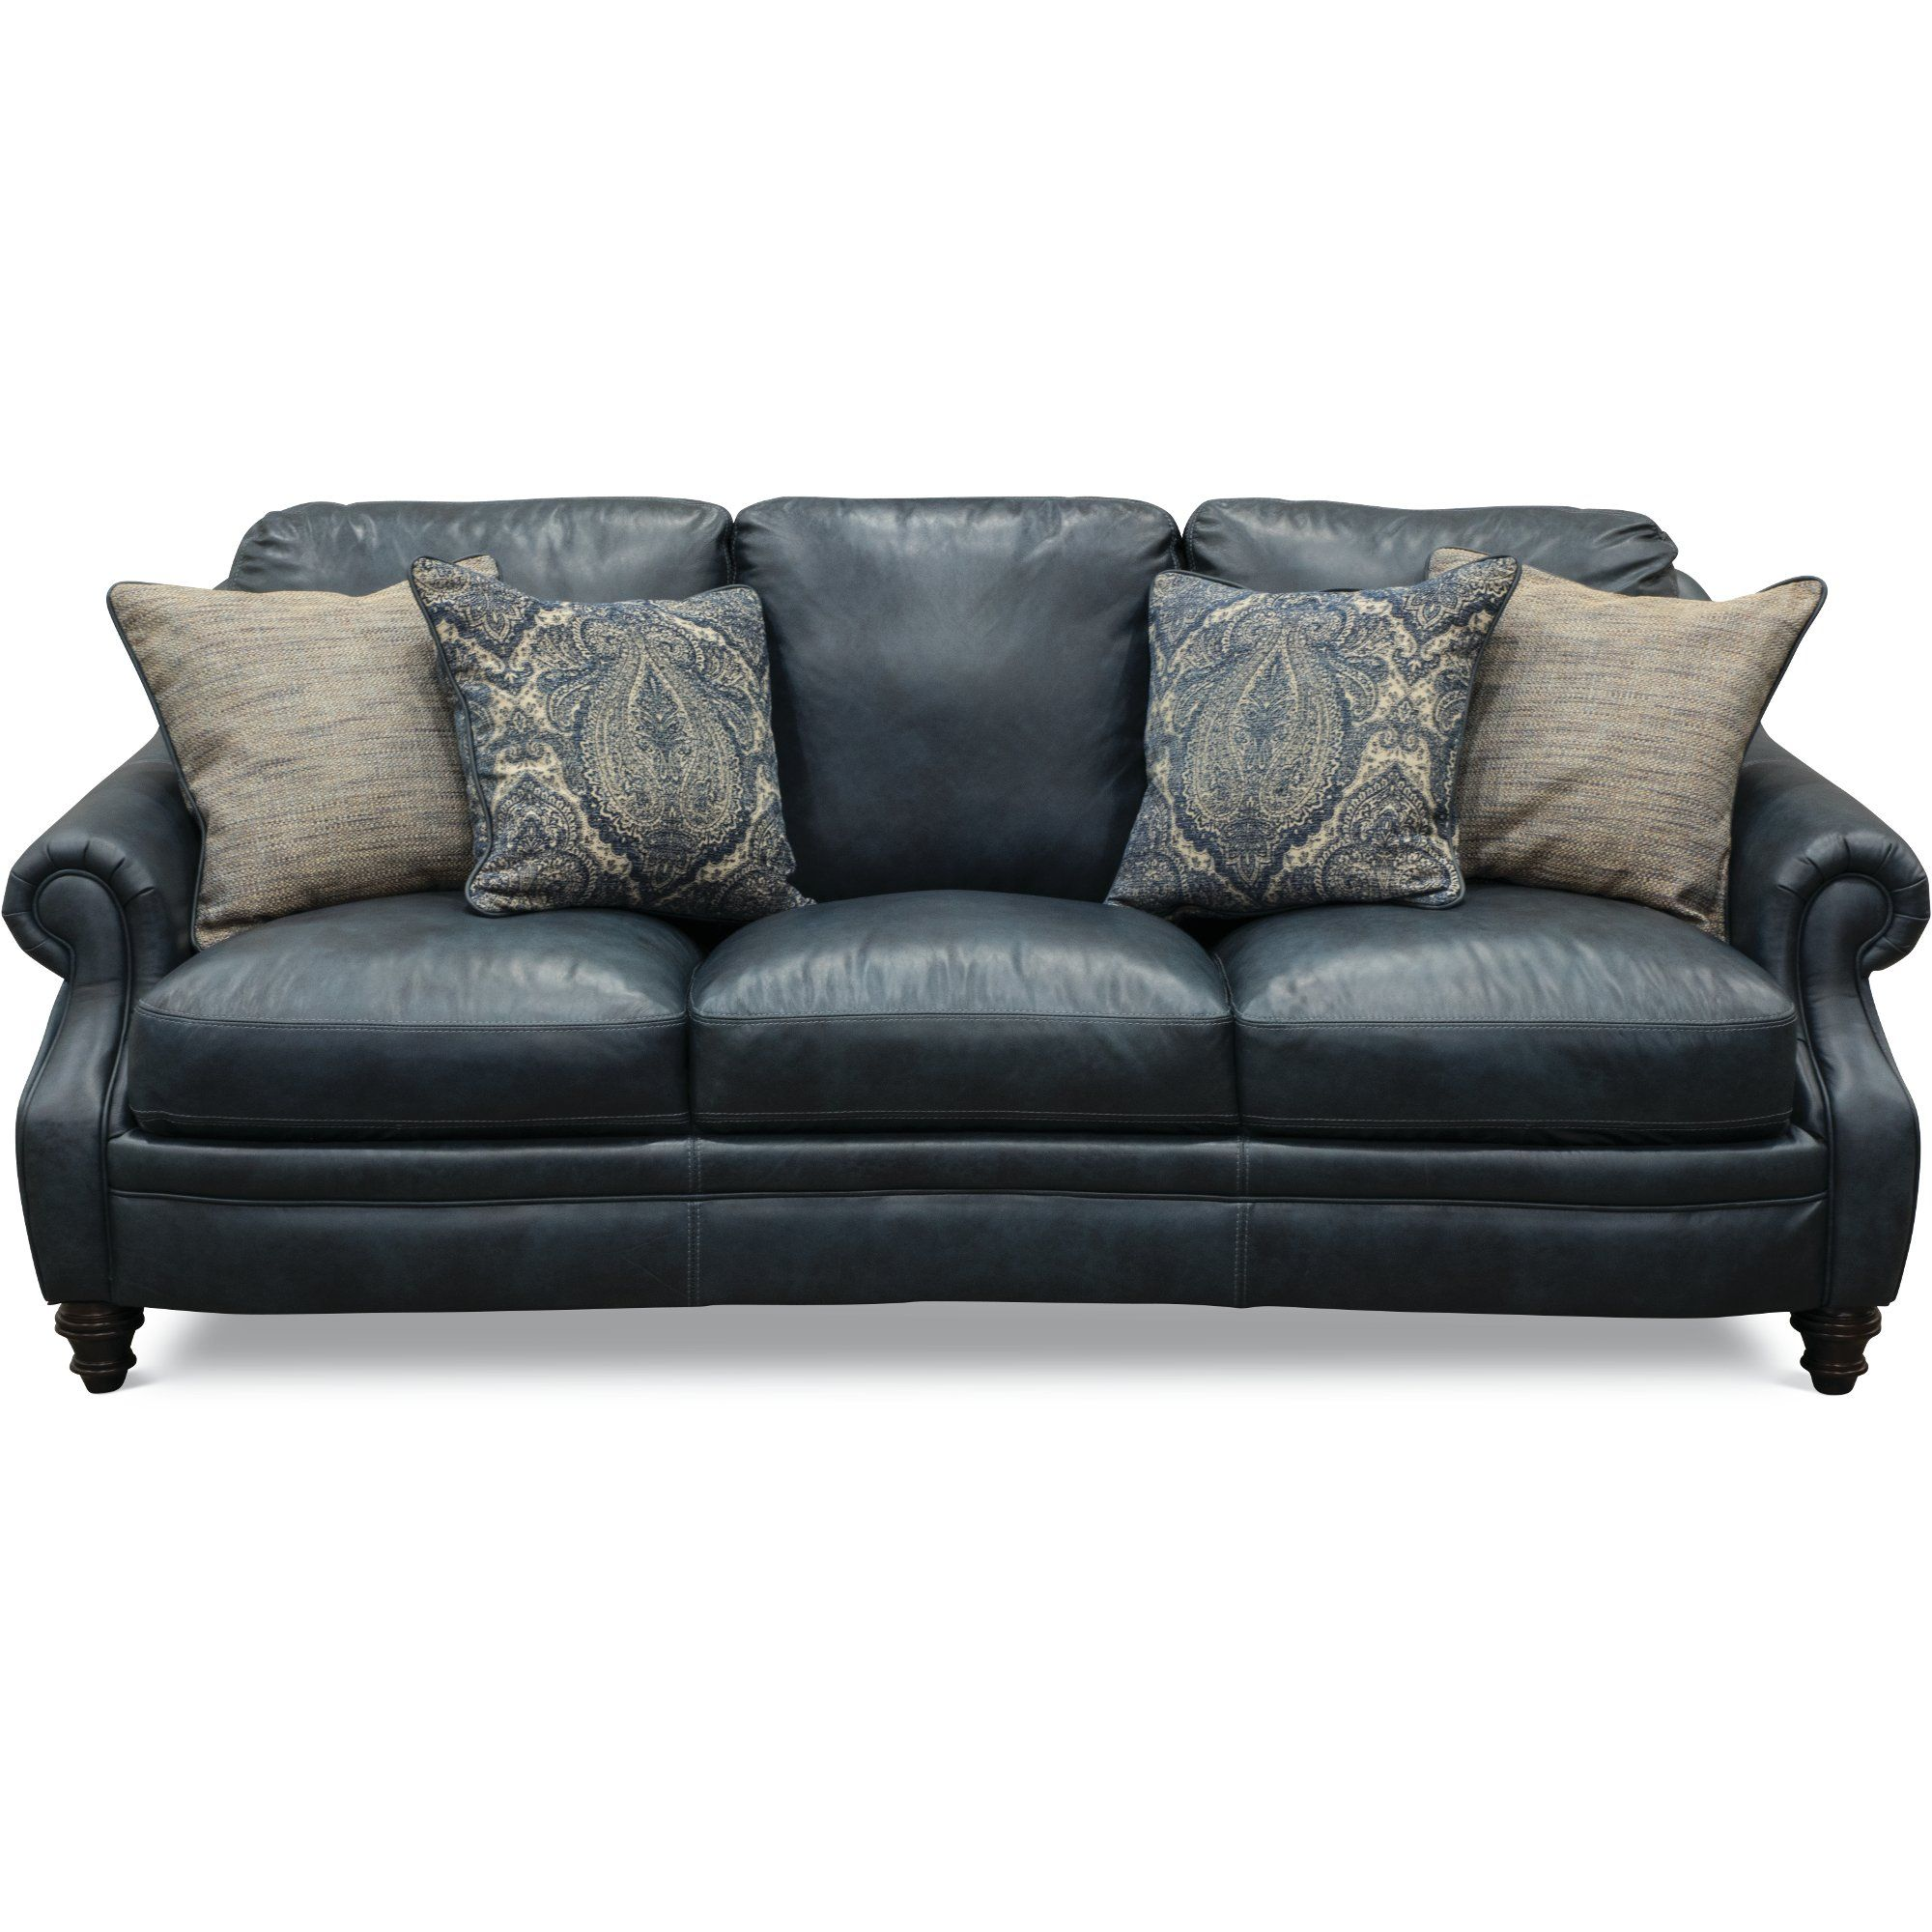 Classic Traditional Navy Blue Leather Sofa Admiral In 2020 Navy Blue Leather Sofa Blue Leather Sofa Blue Leather Couch